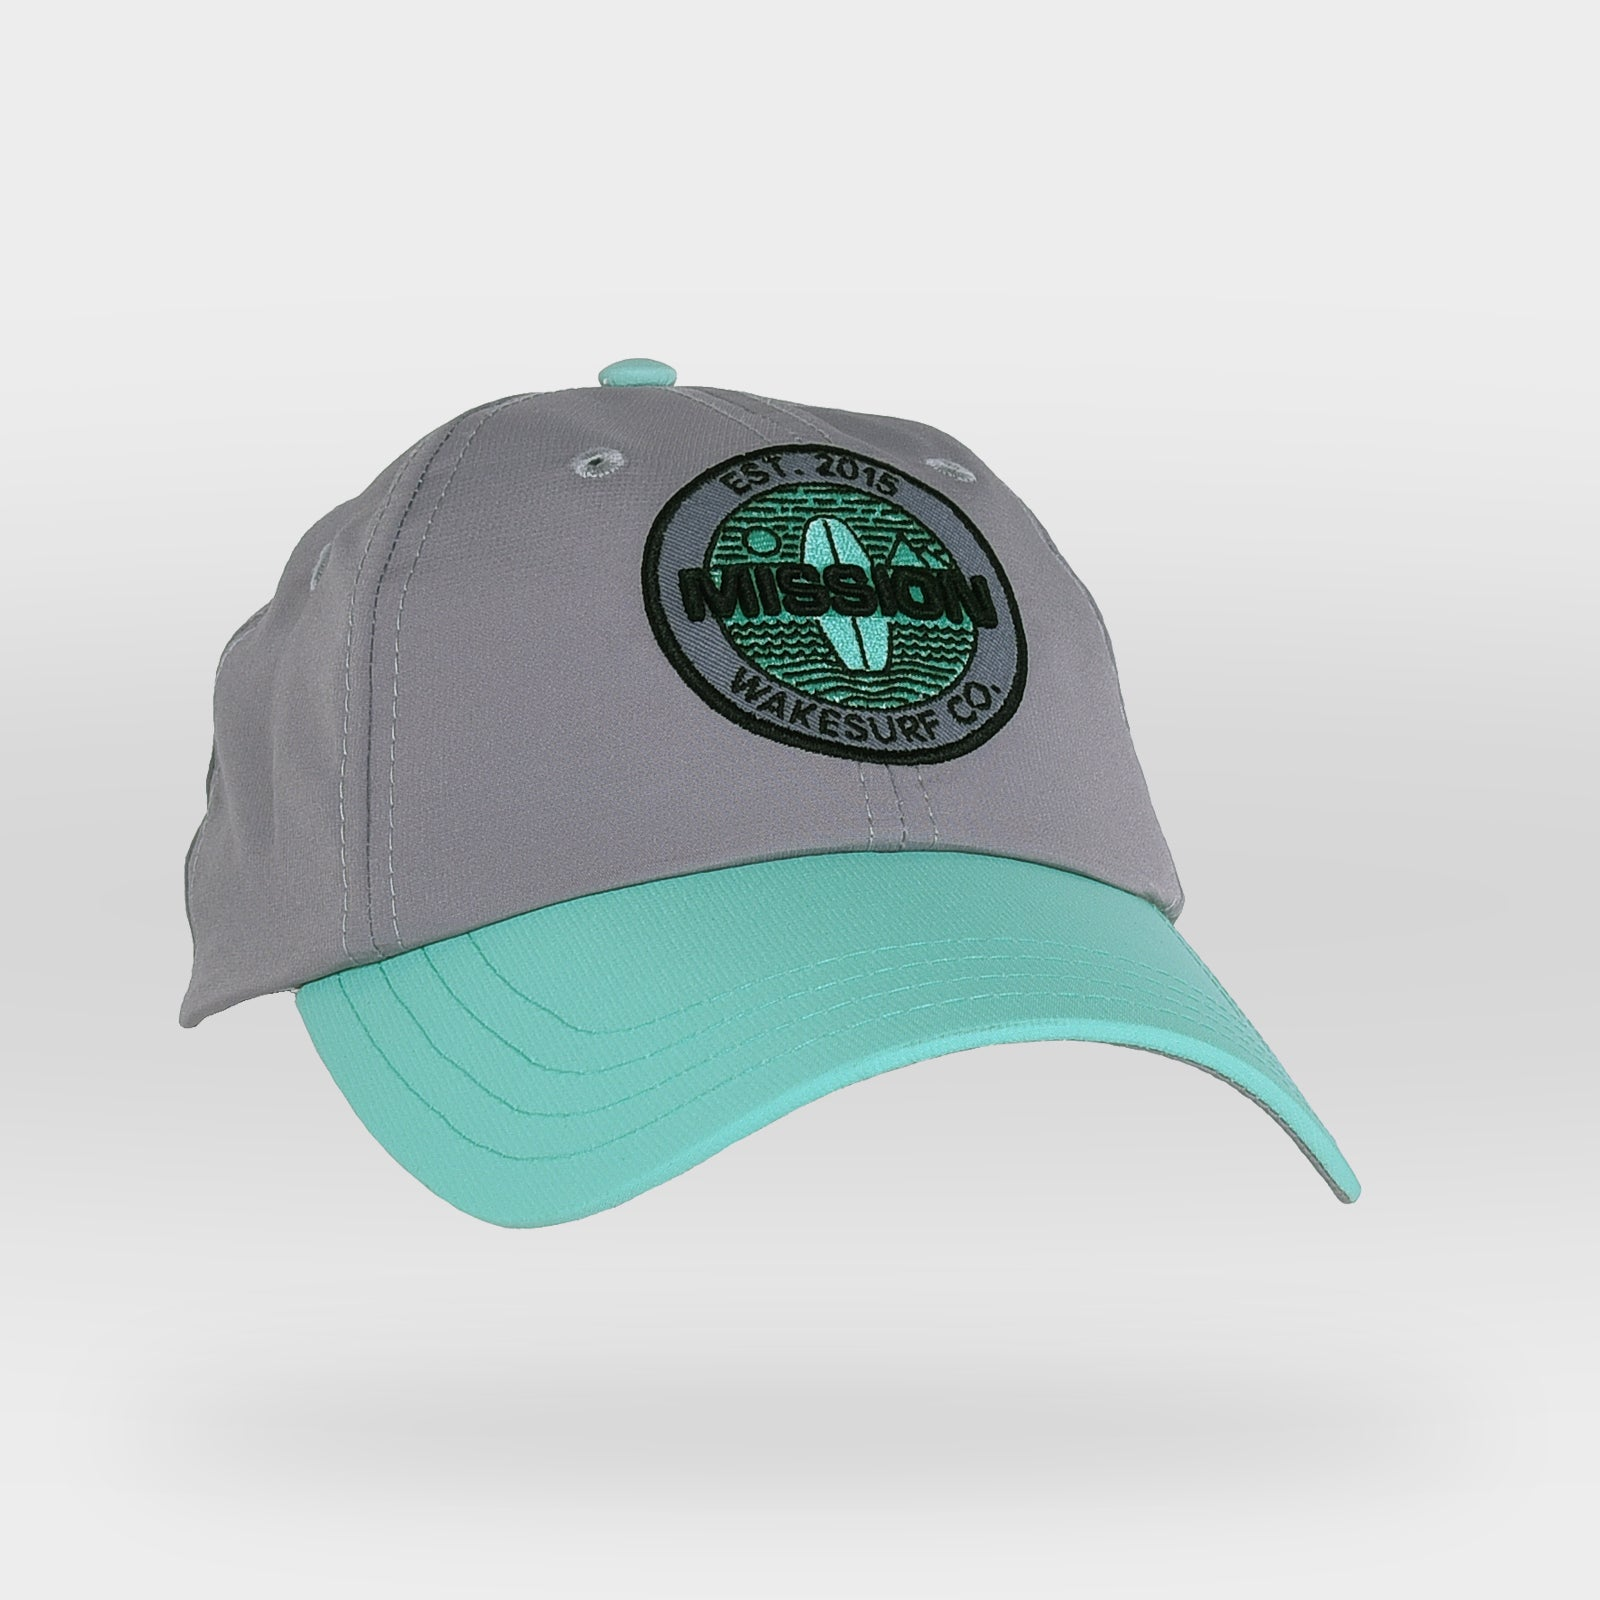 MISSION WakeSurf Co. Hat :: 6 Panel